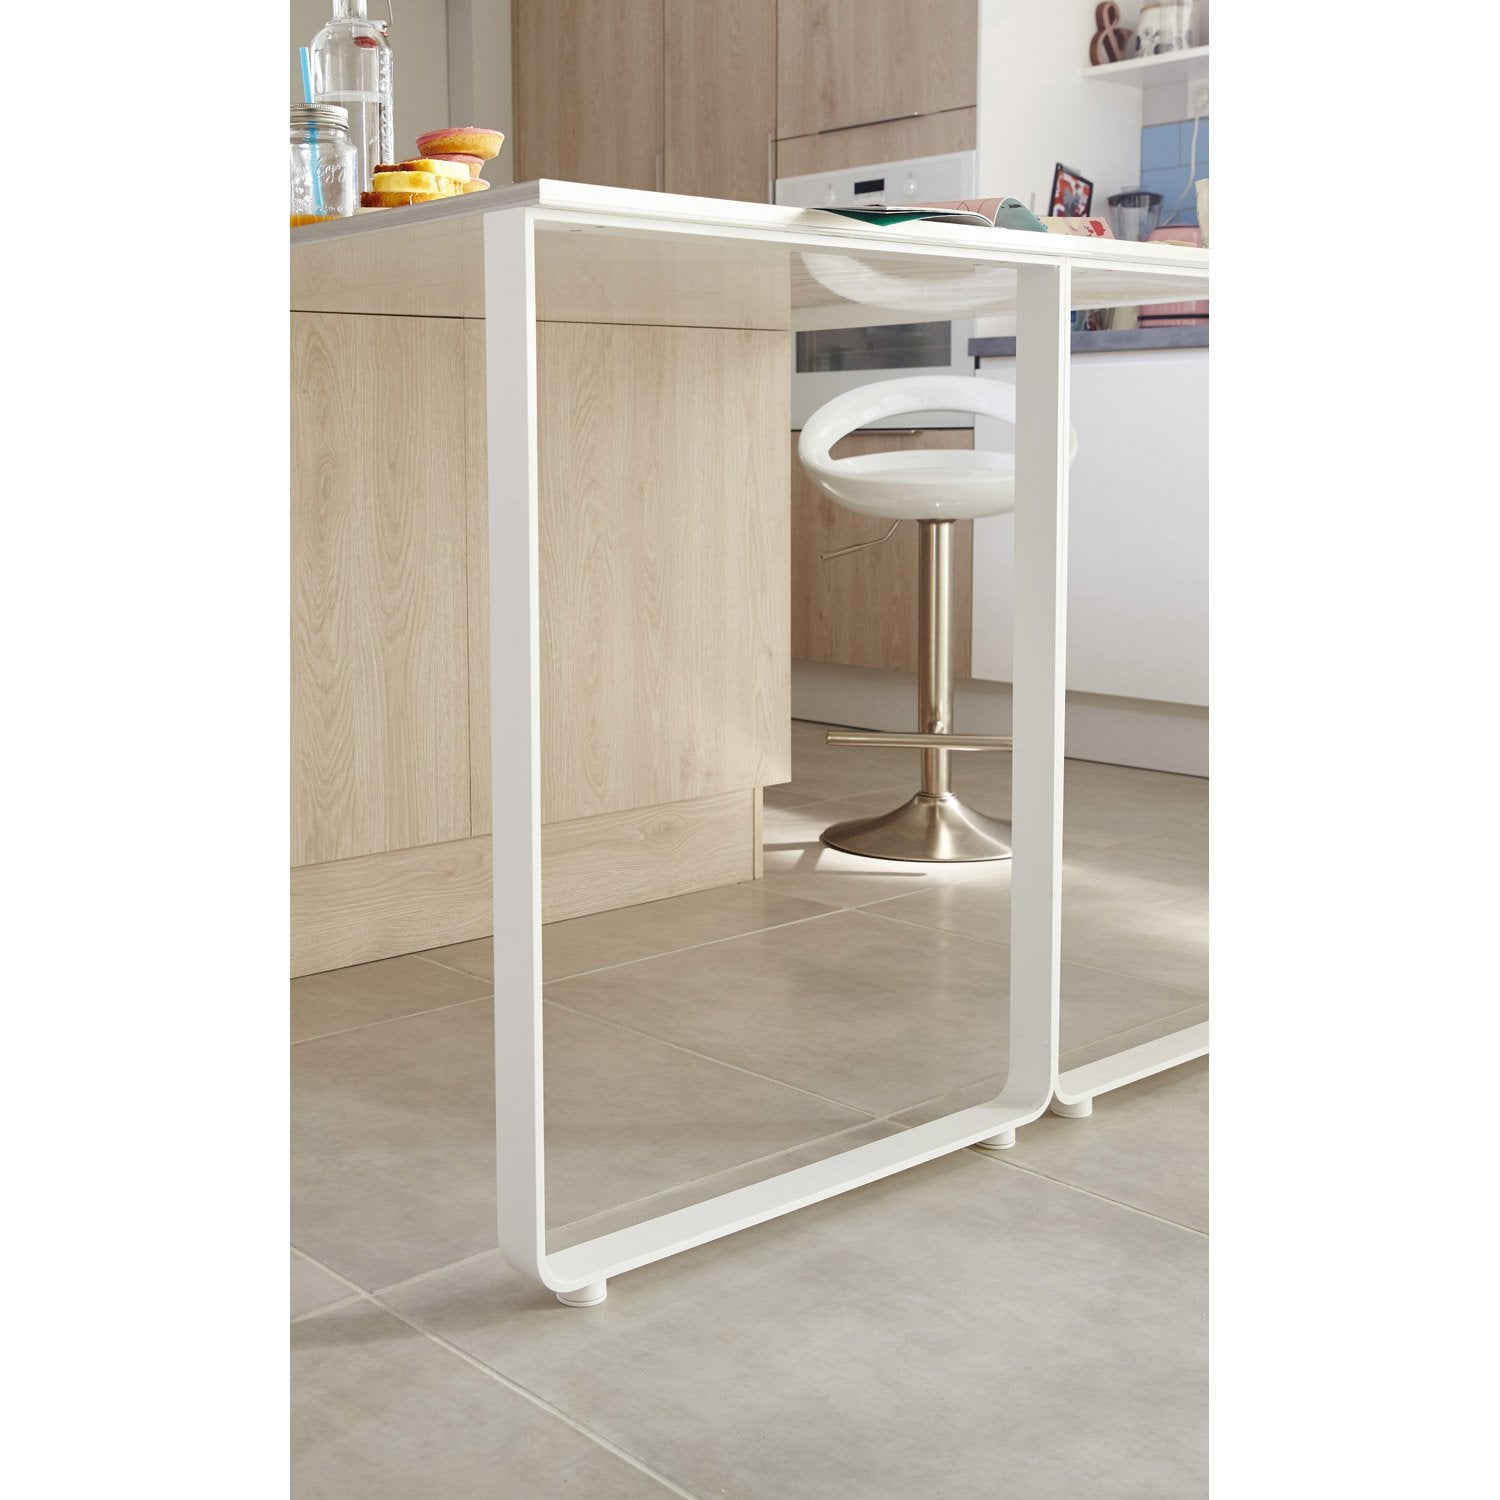 Pied blanc x cm leroy merlin for Table de cuisine pliante leroy merlin